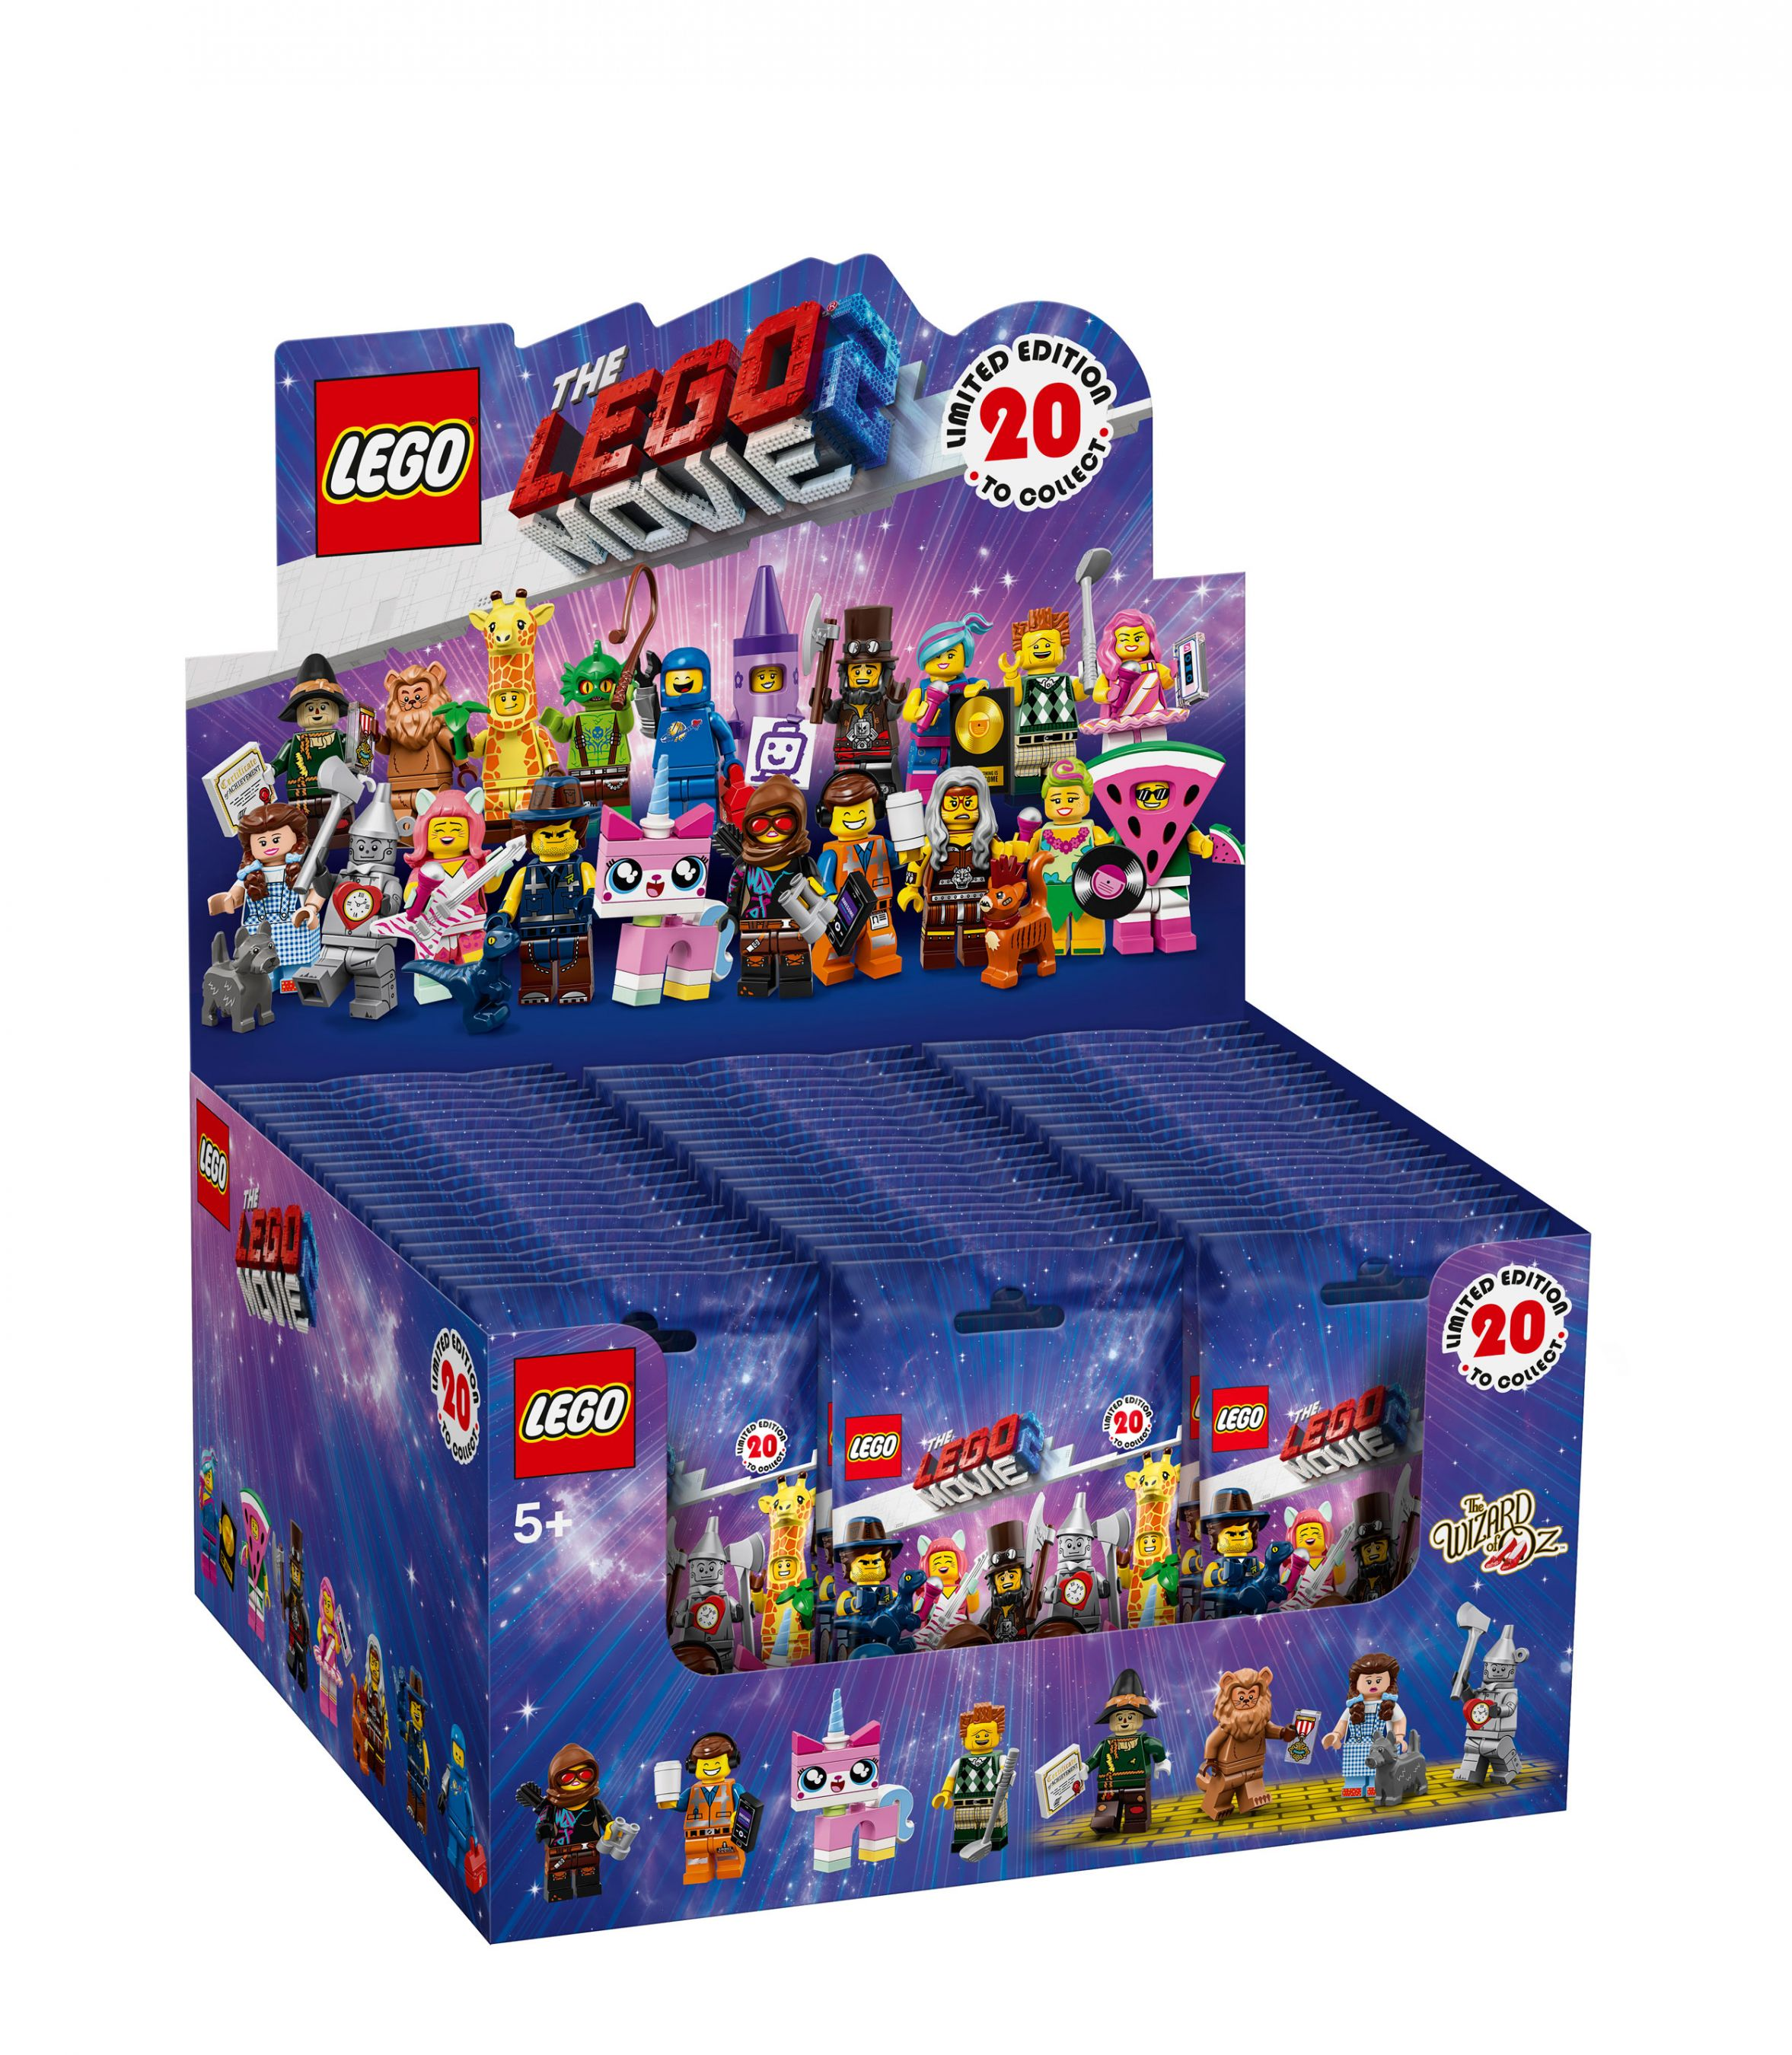 LEGO Collectable Minifigures 71023 THE LEGO® MOVIE 2 - 60er Box